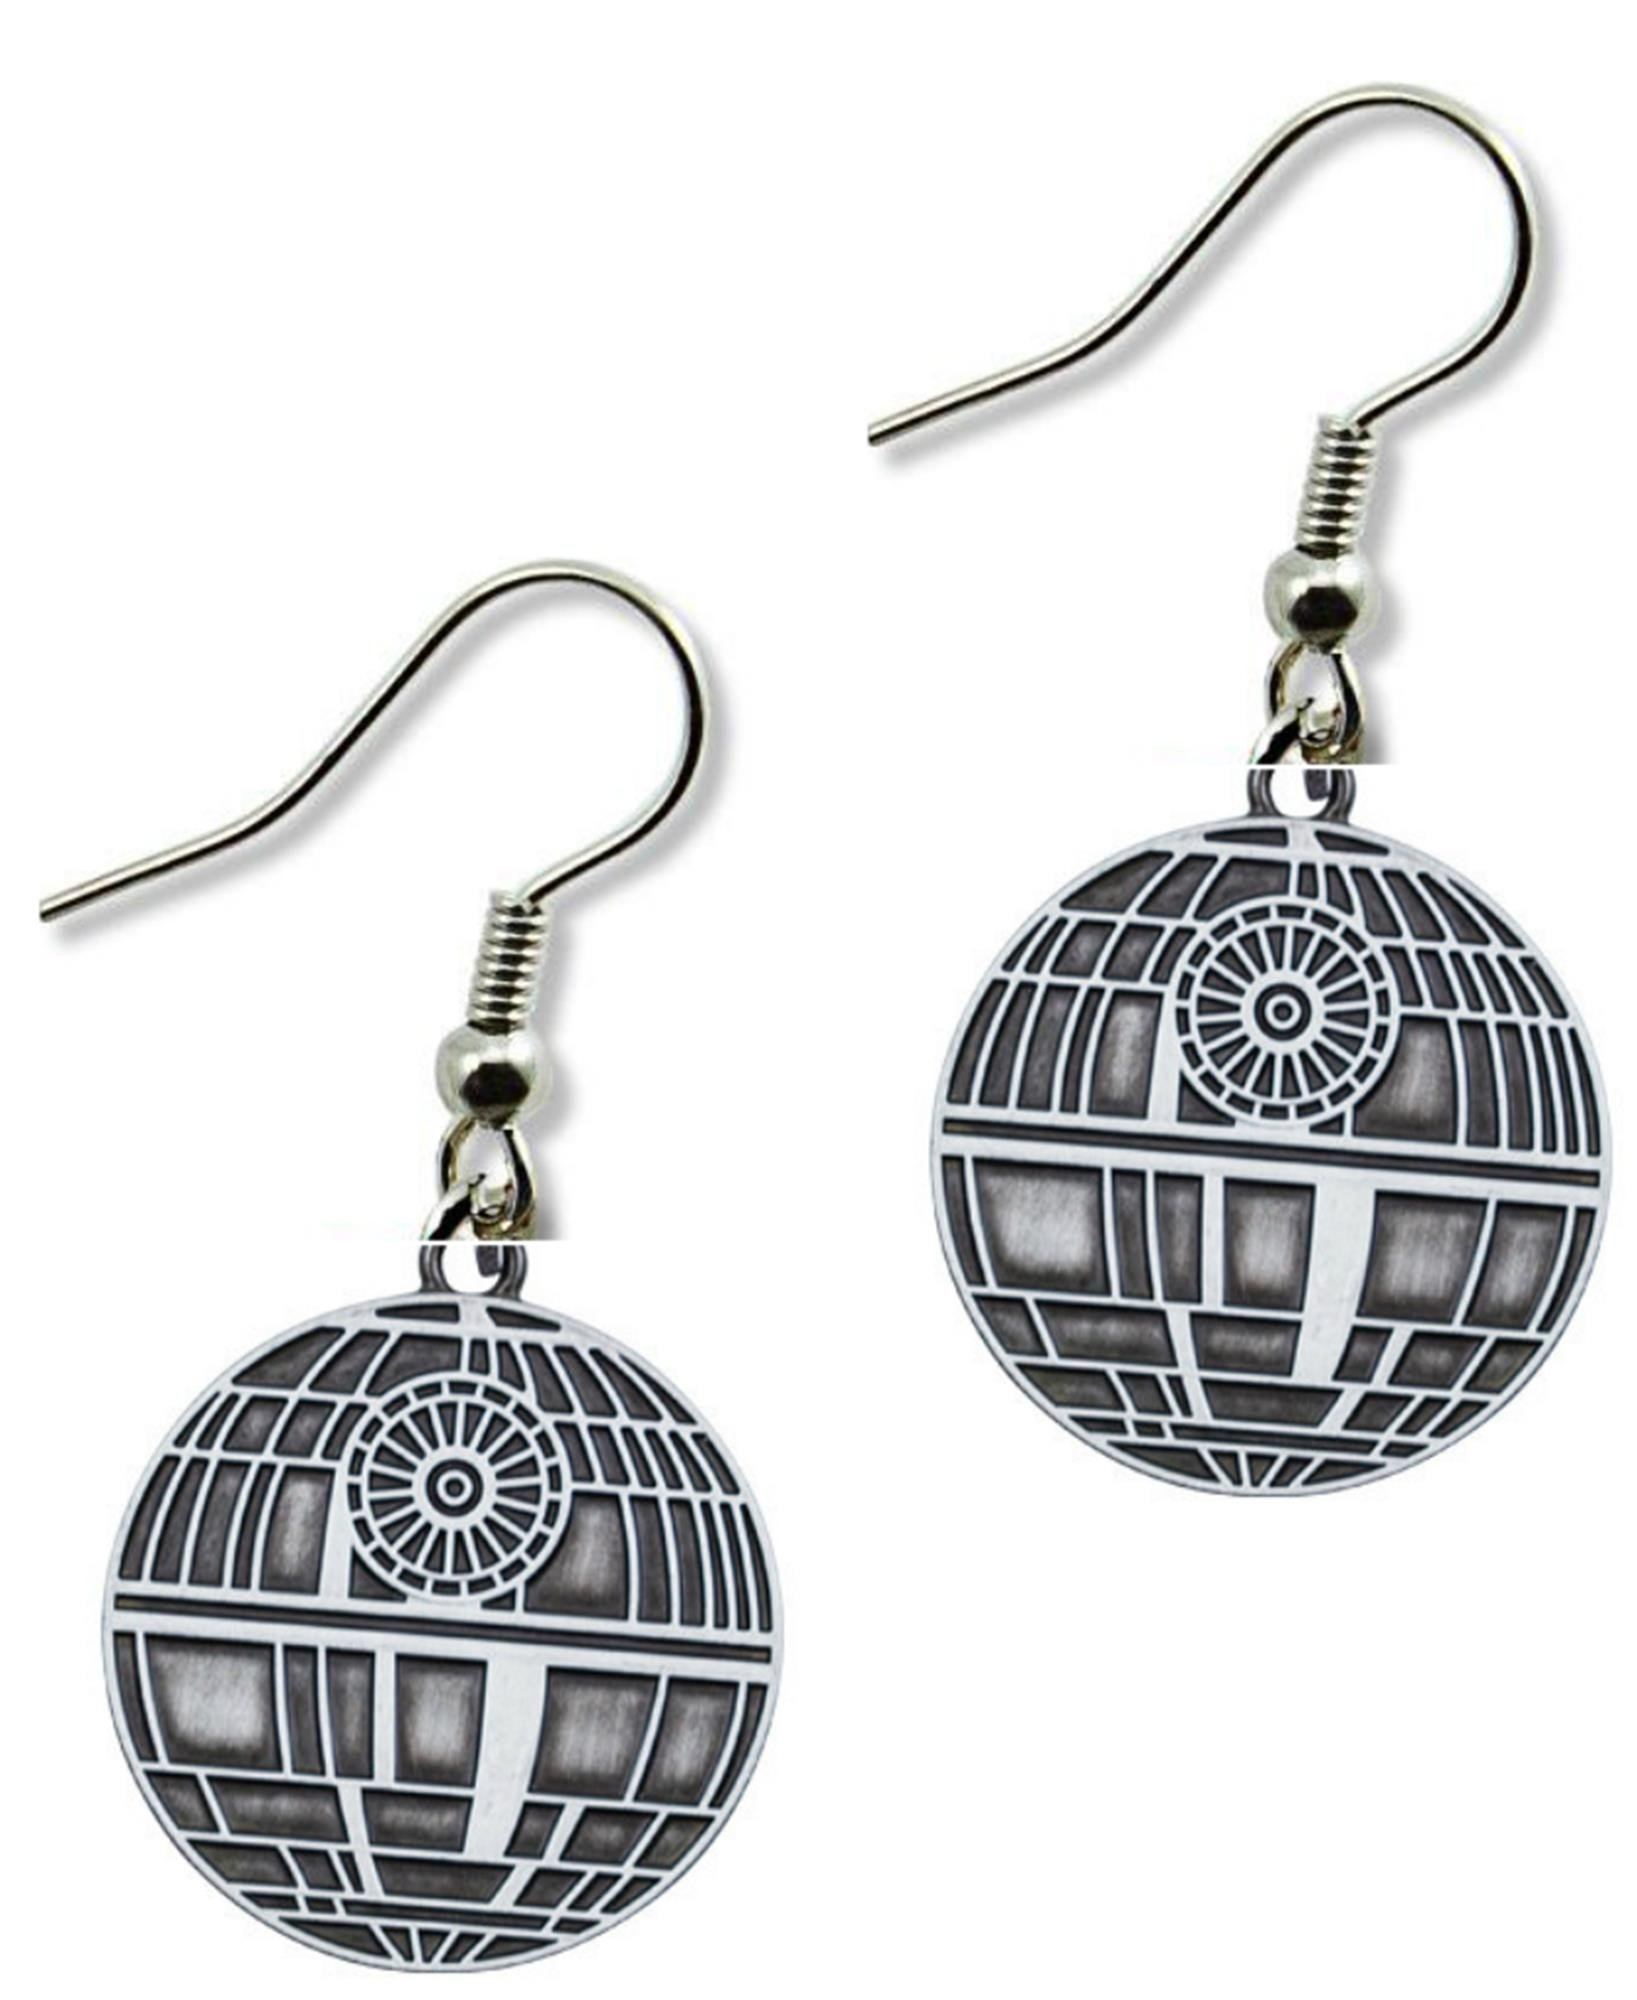 Outlander Star Wars Death Star Color Earring Dangles In Gift Box From